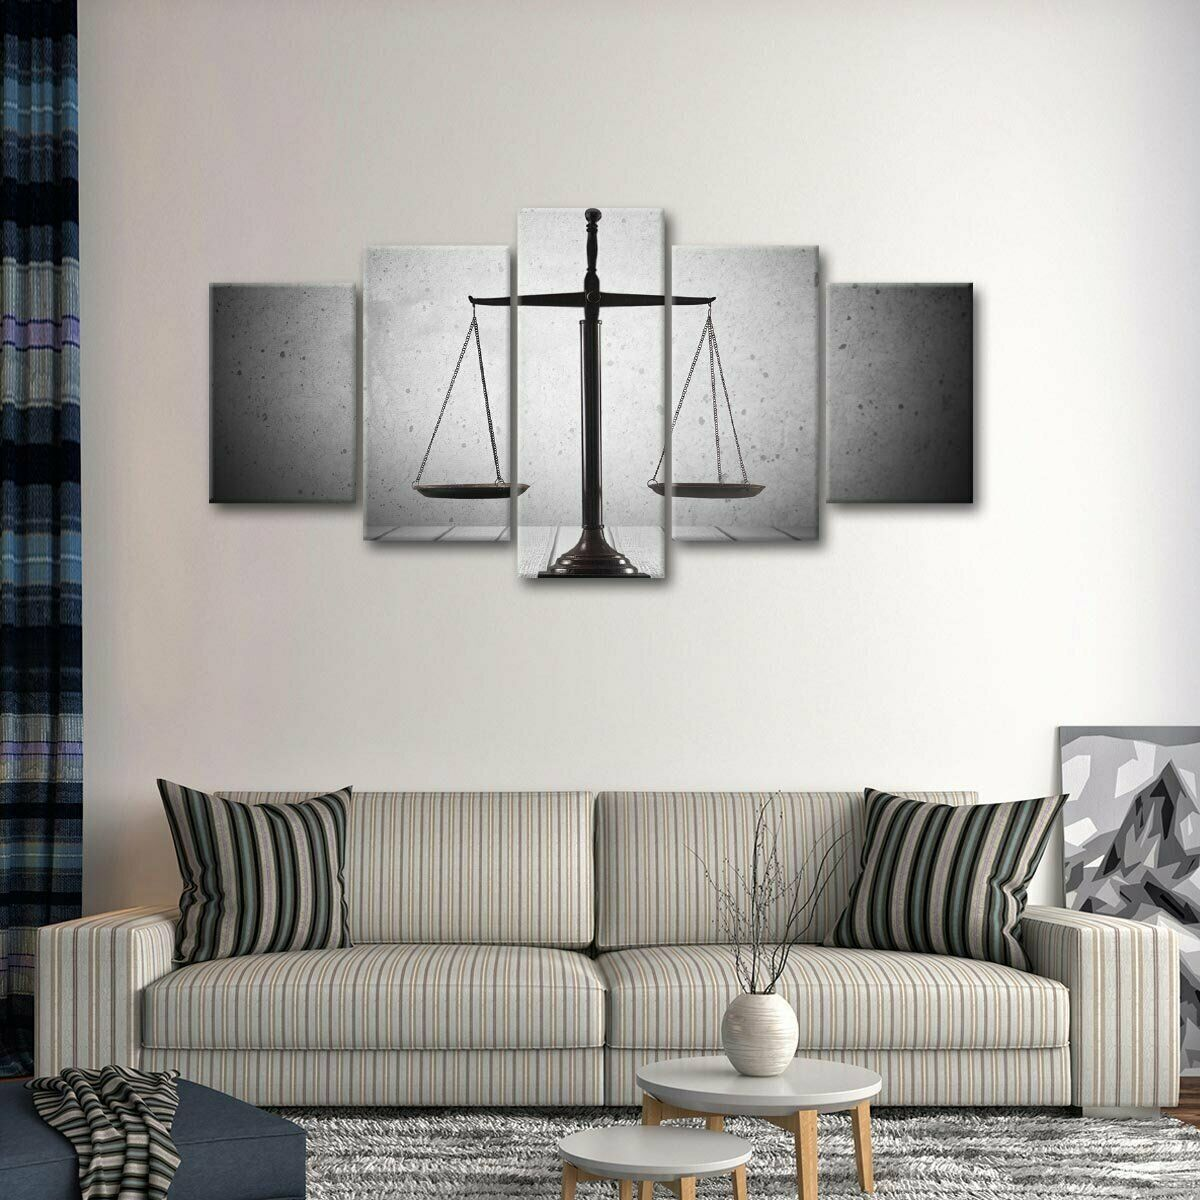 Balanced Justice 5 panel canvas Wall Art Home Decor Poster Print